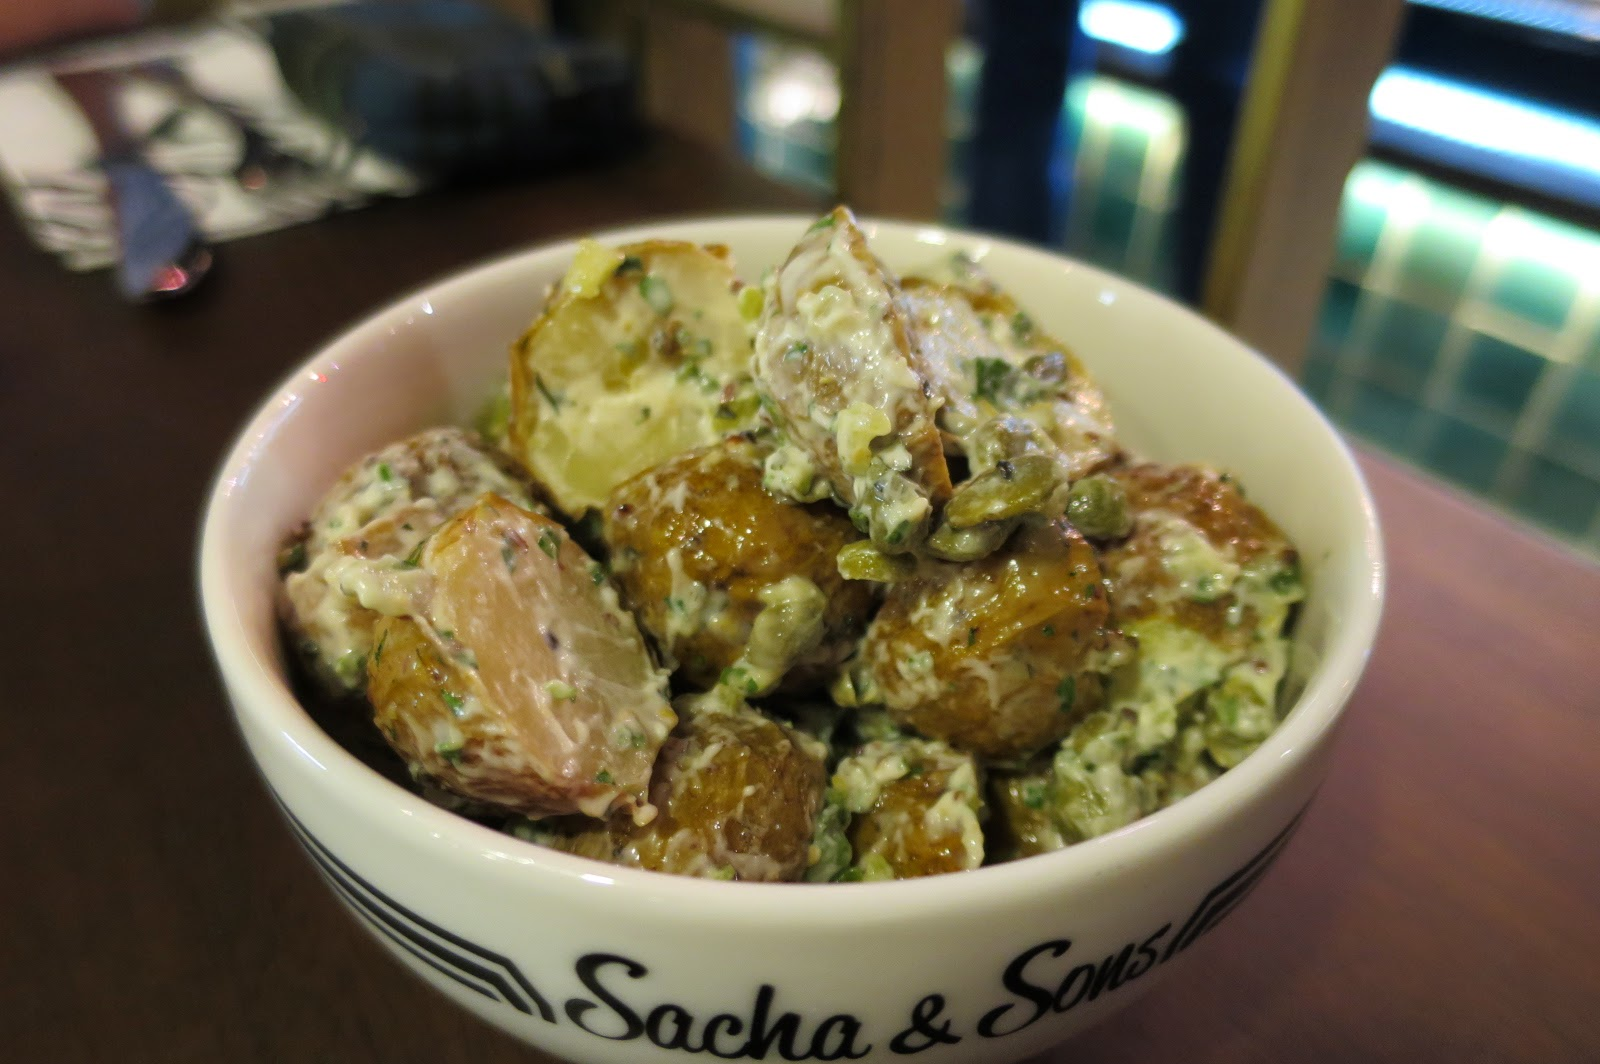 Try the potato salad with capers. It's actually pretty good.